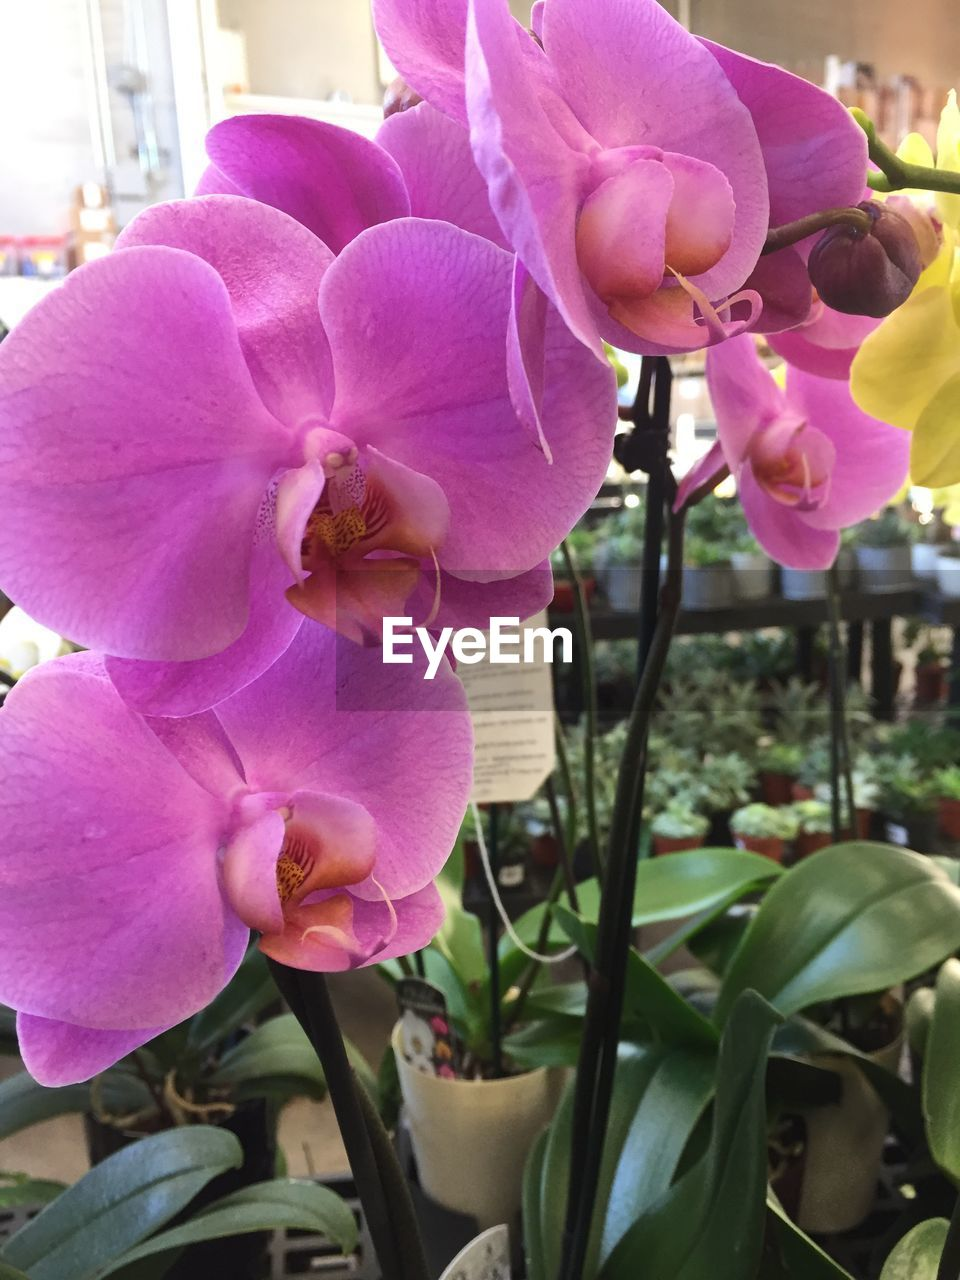 flower, petal, growth, nature, plant, fragility, pink color, beauty in nature, flower head, blooming, outdoors, day, freshness, no people, close-up, orchid